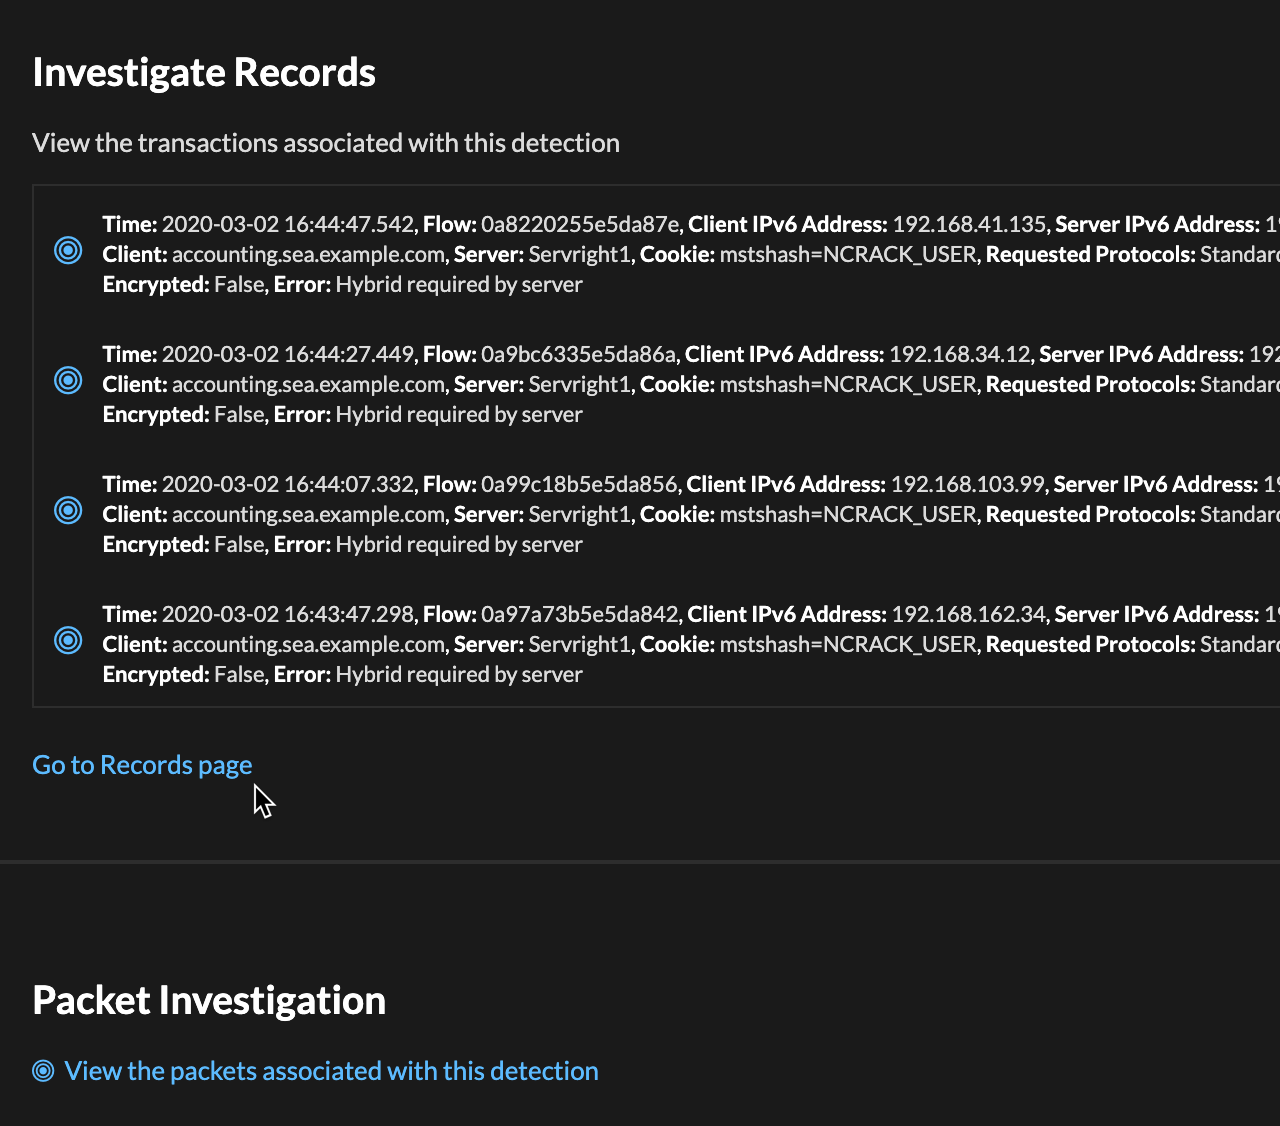 Investigation Records